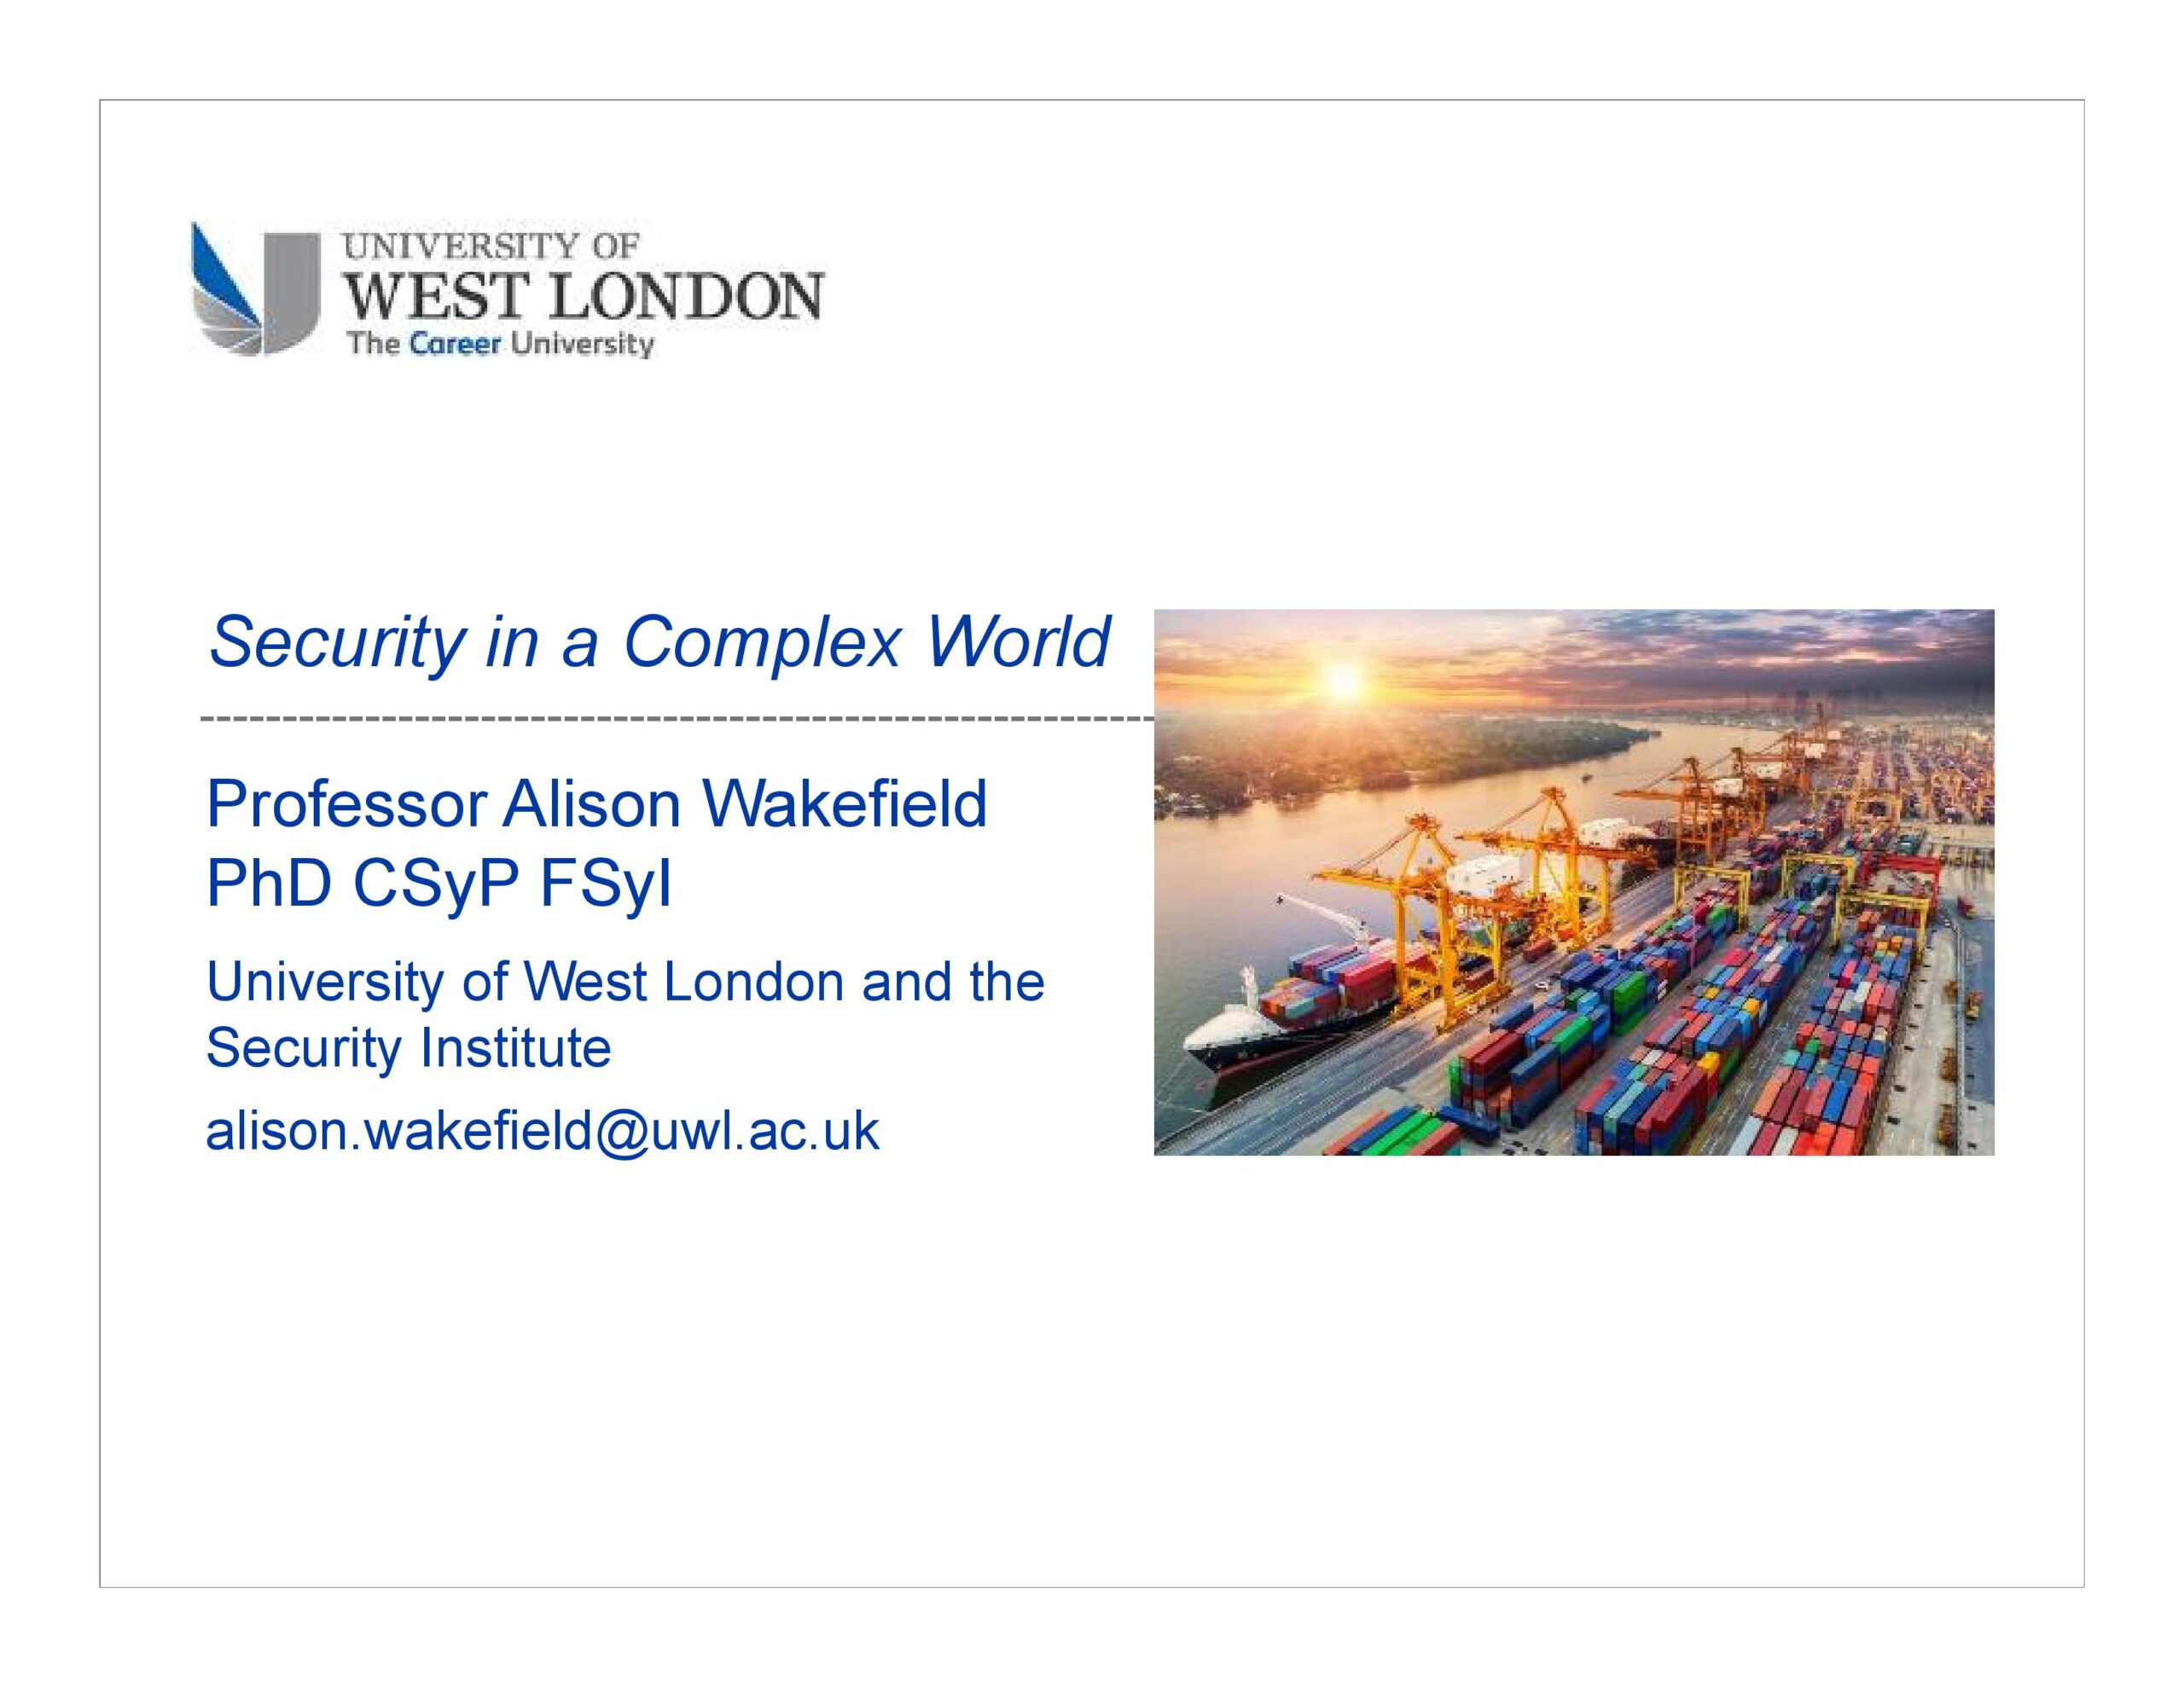 Security in a Complex World - front page